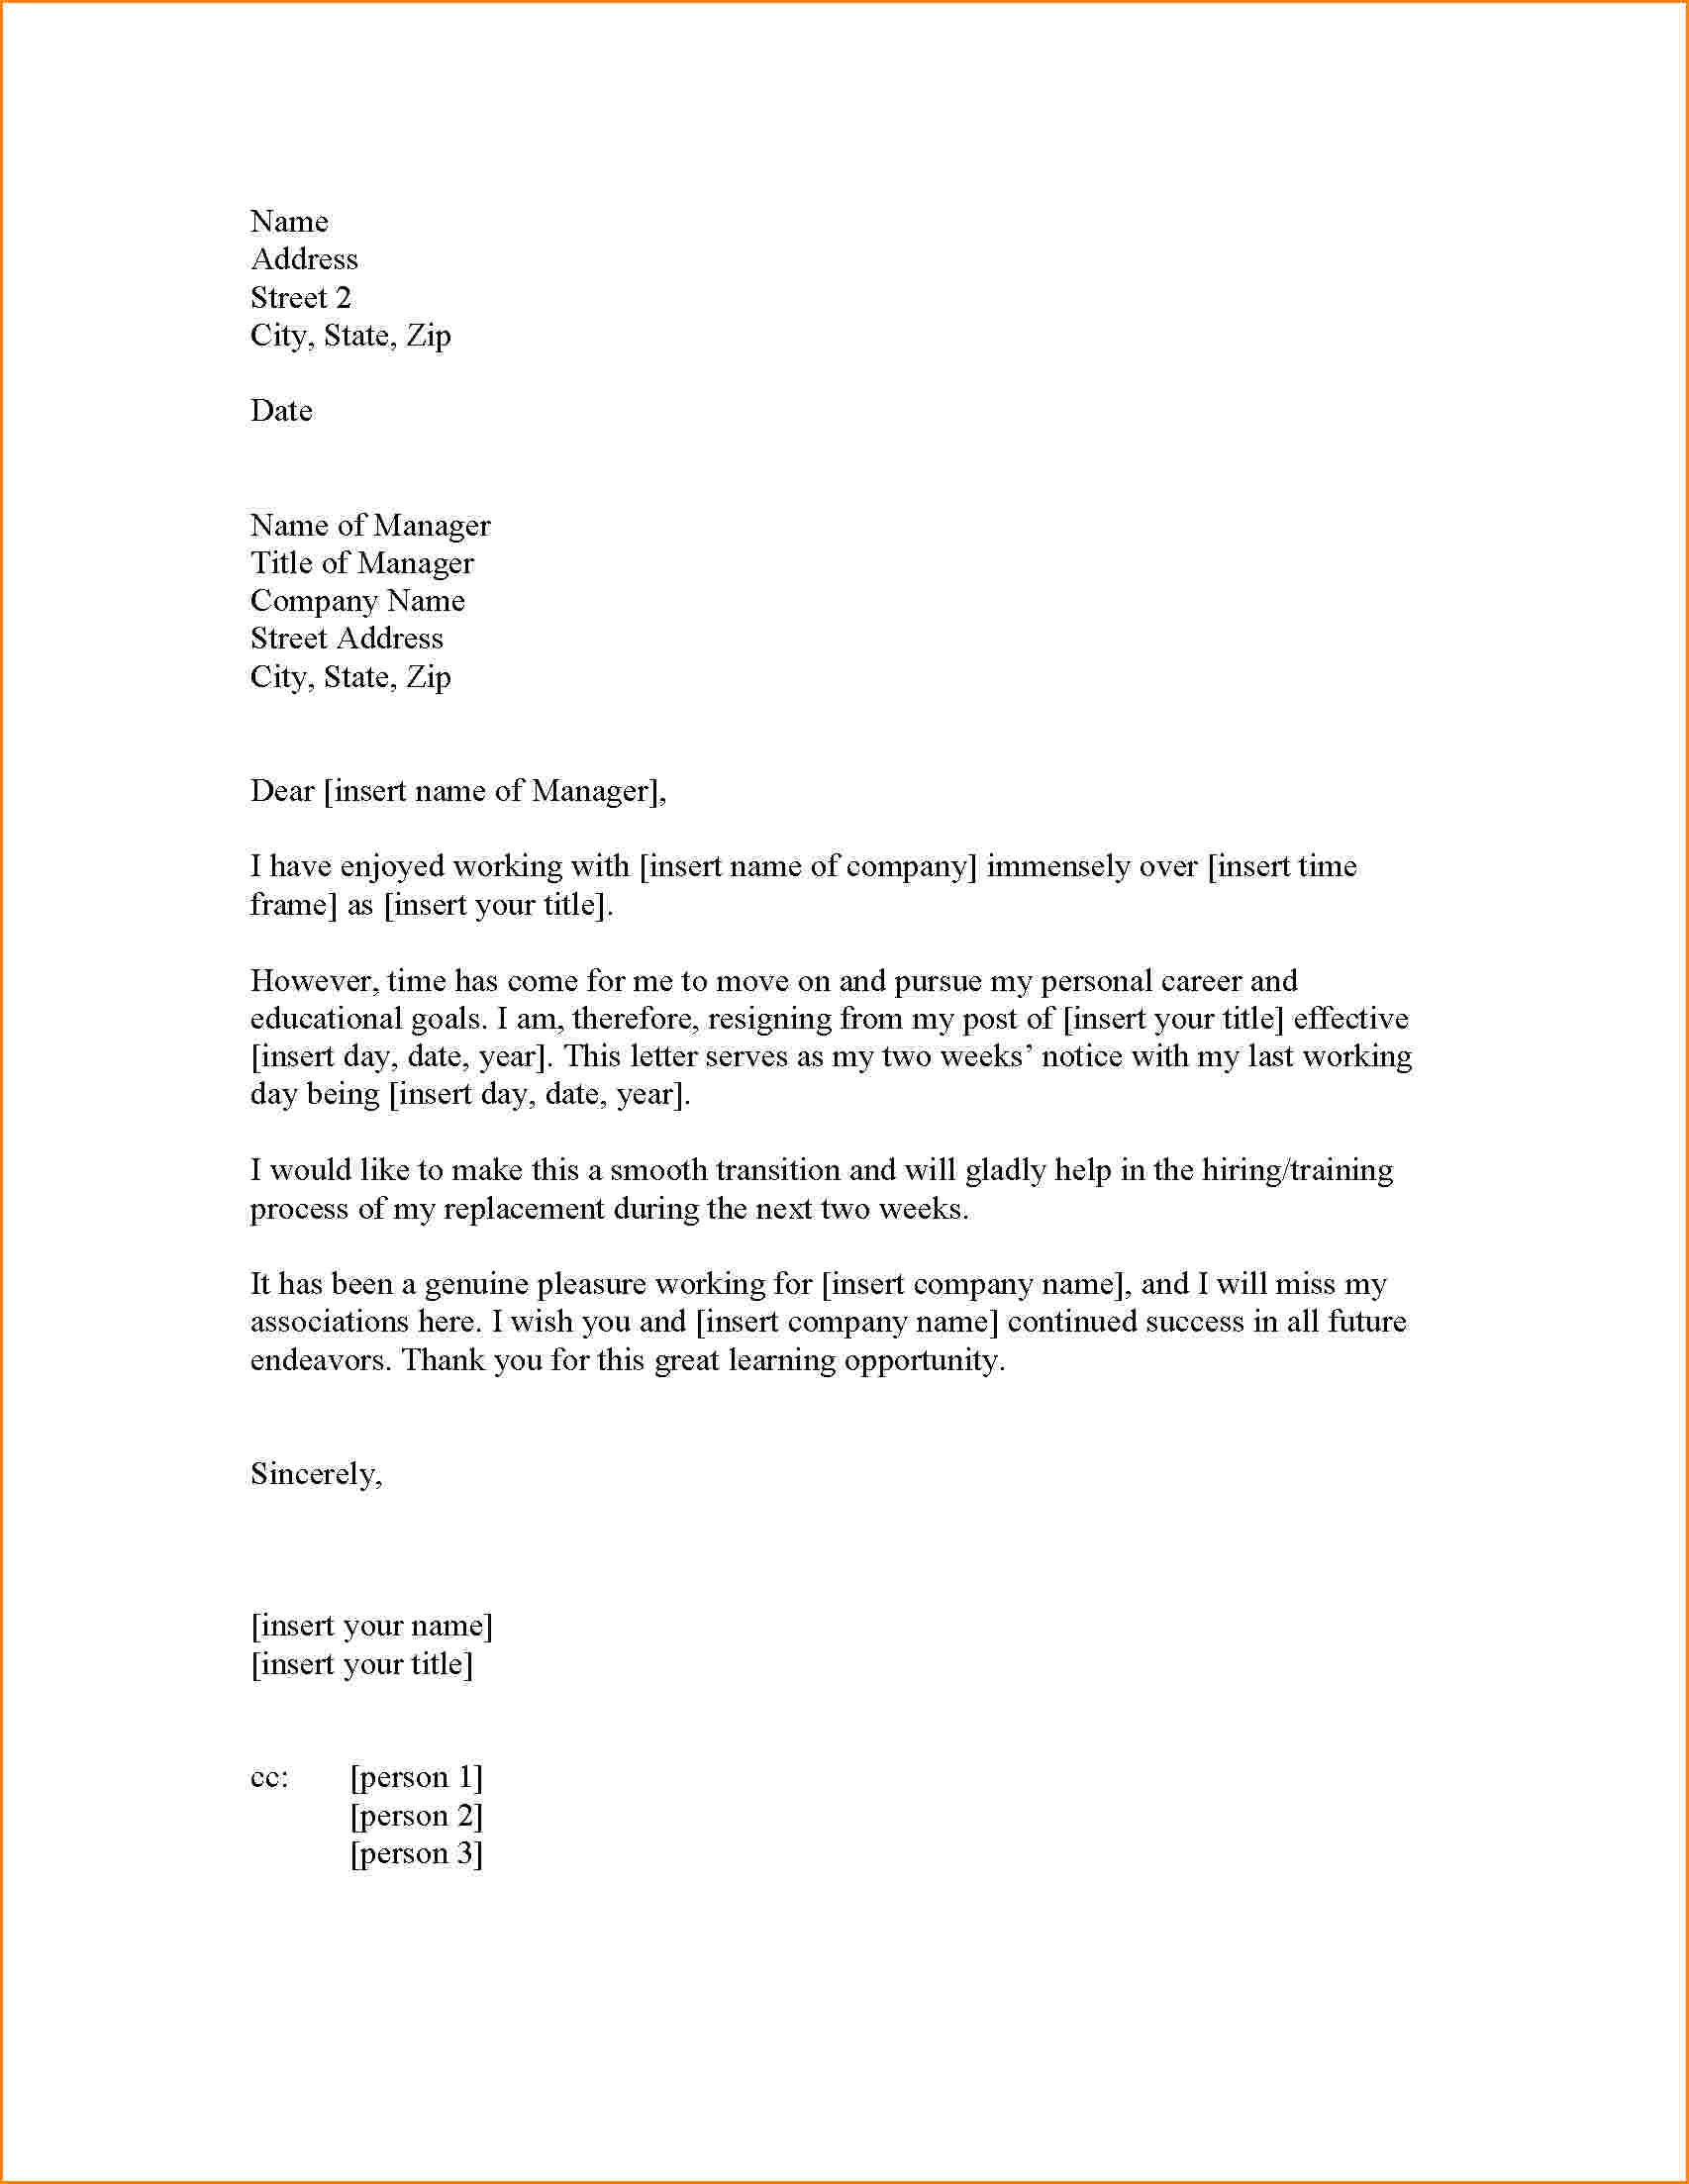 Resignation letter two weeks notice images about resignation letter about resignation letter feebd of vs 2 weeks notice example two pdf free rn formal simple sample retail template email without nurseg 17062206 thecheapjerseys